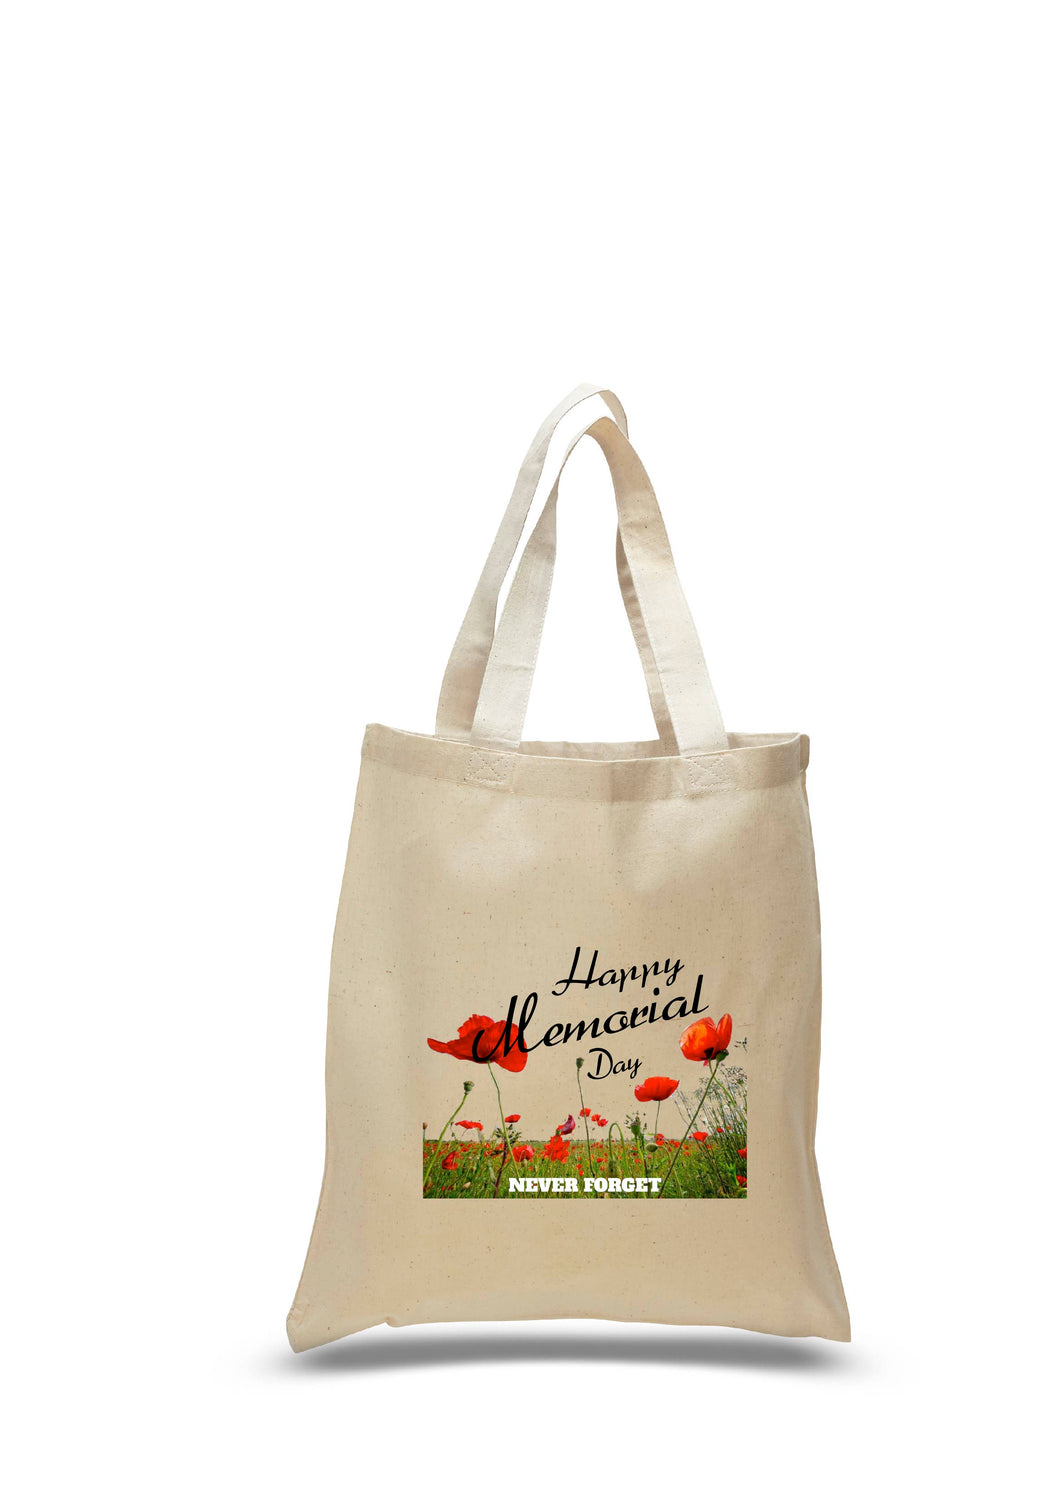 Happy Memorial Day Tote